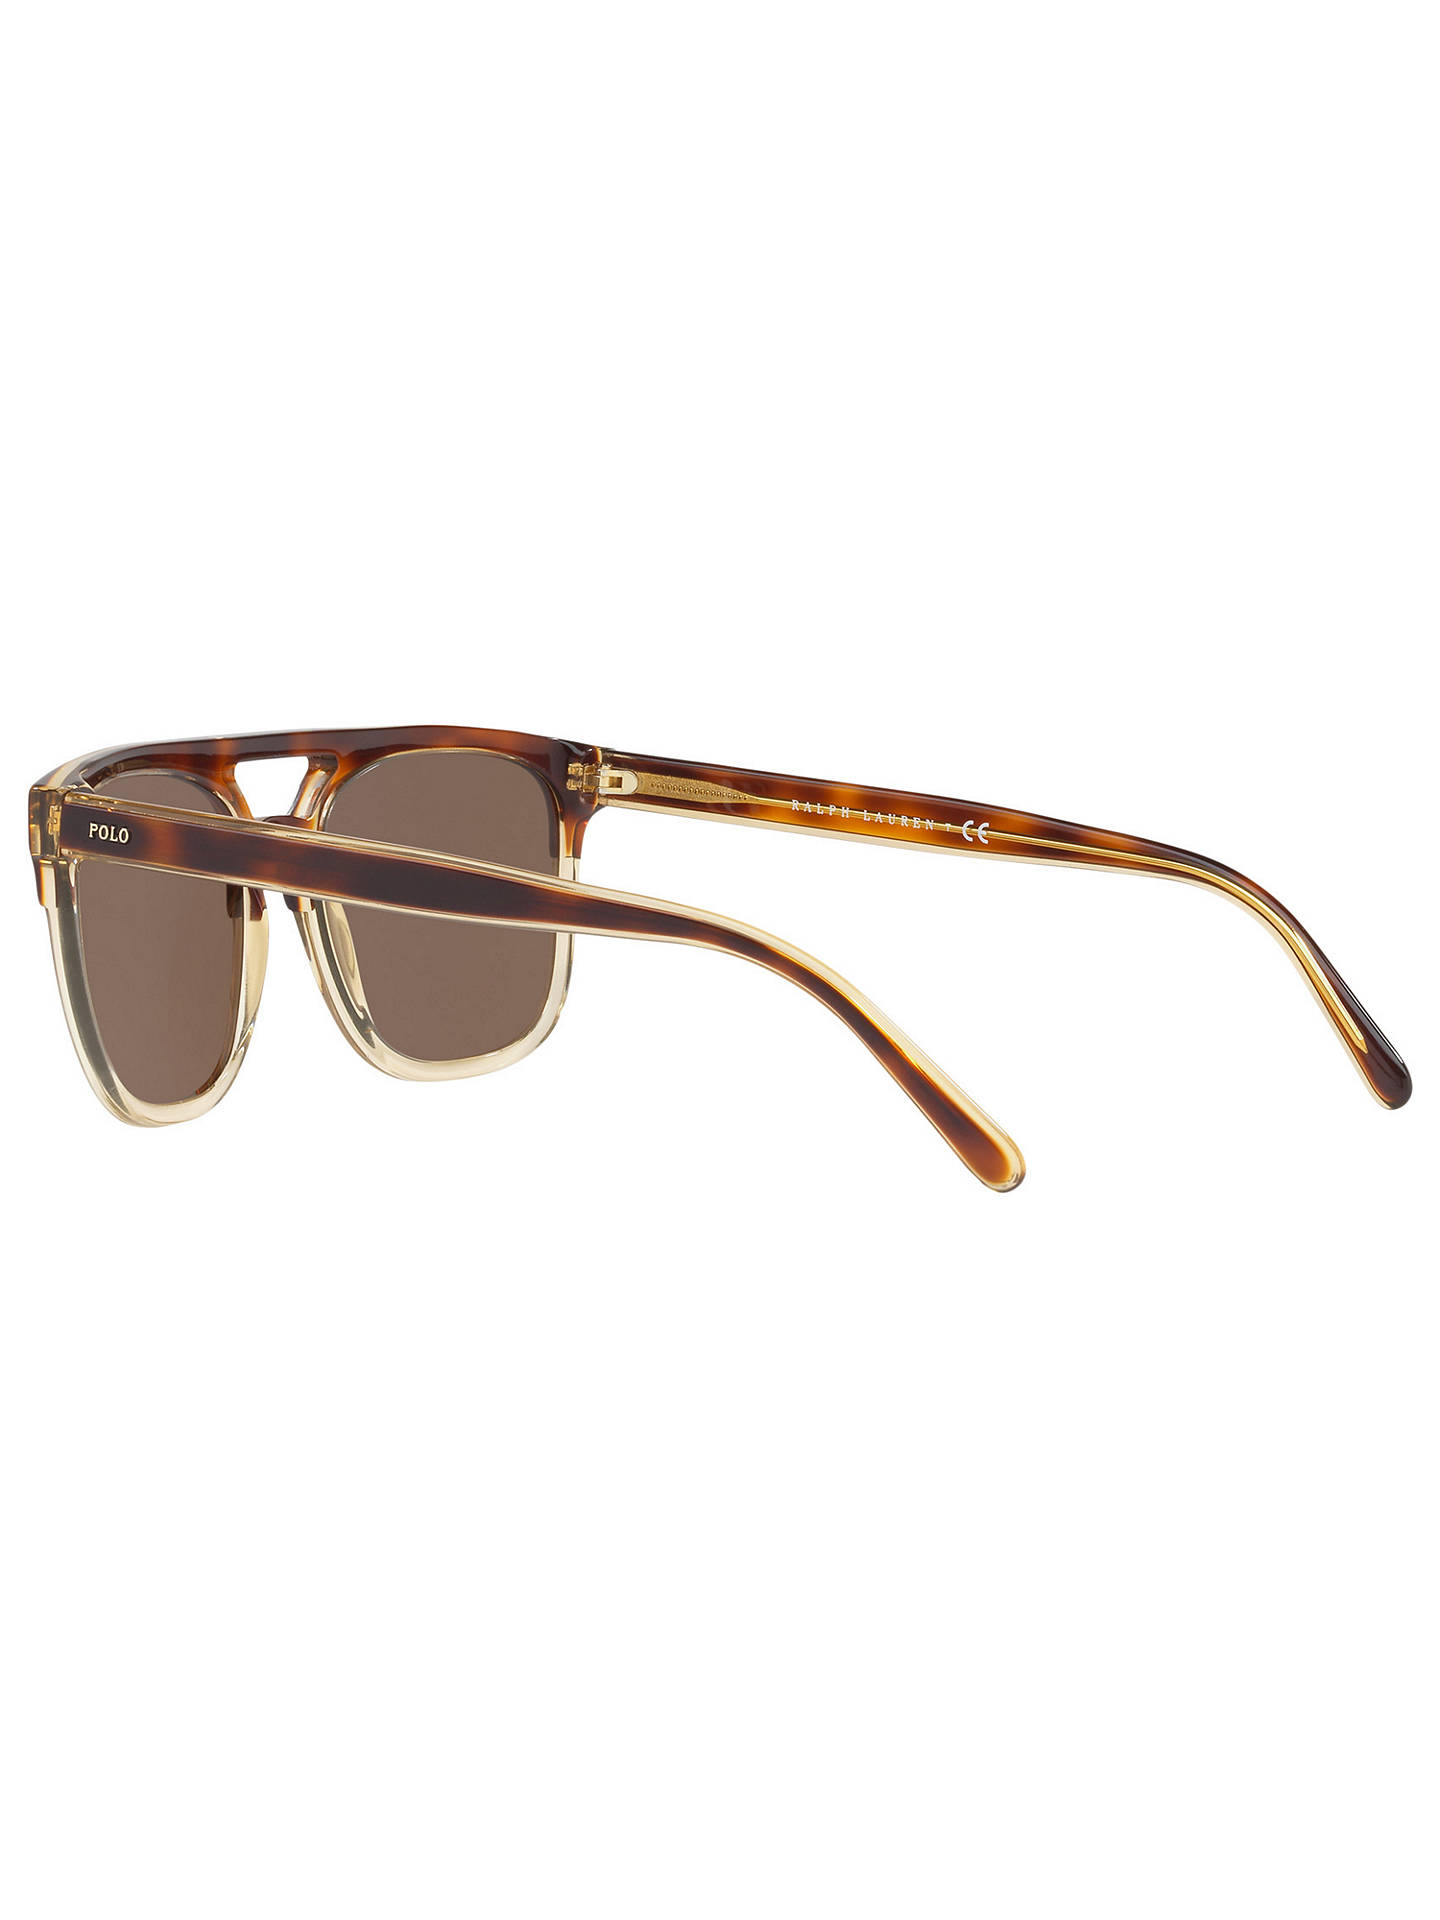 BuyPolo Ralph Lauren PH4125 Men's D-Frame Sunglasses, Tortoise/Brown Online at johnlewis.com